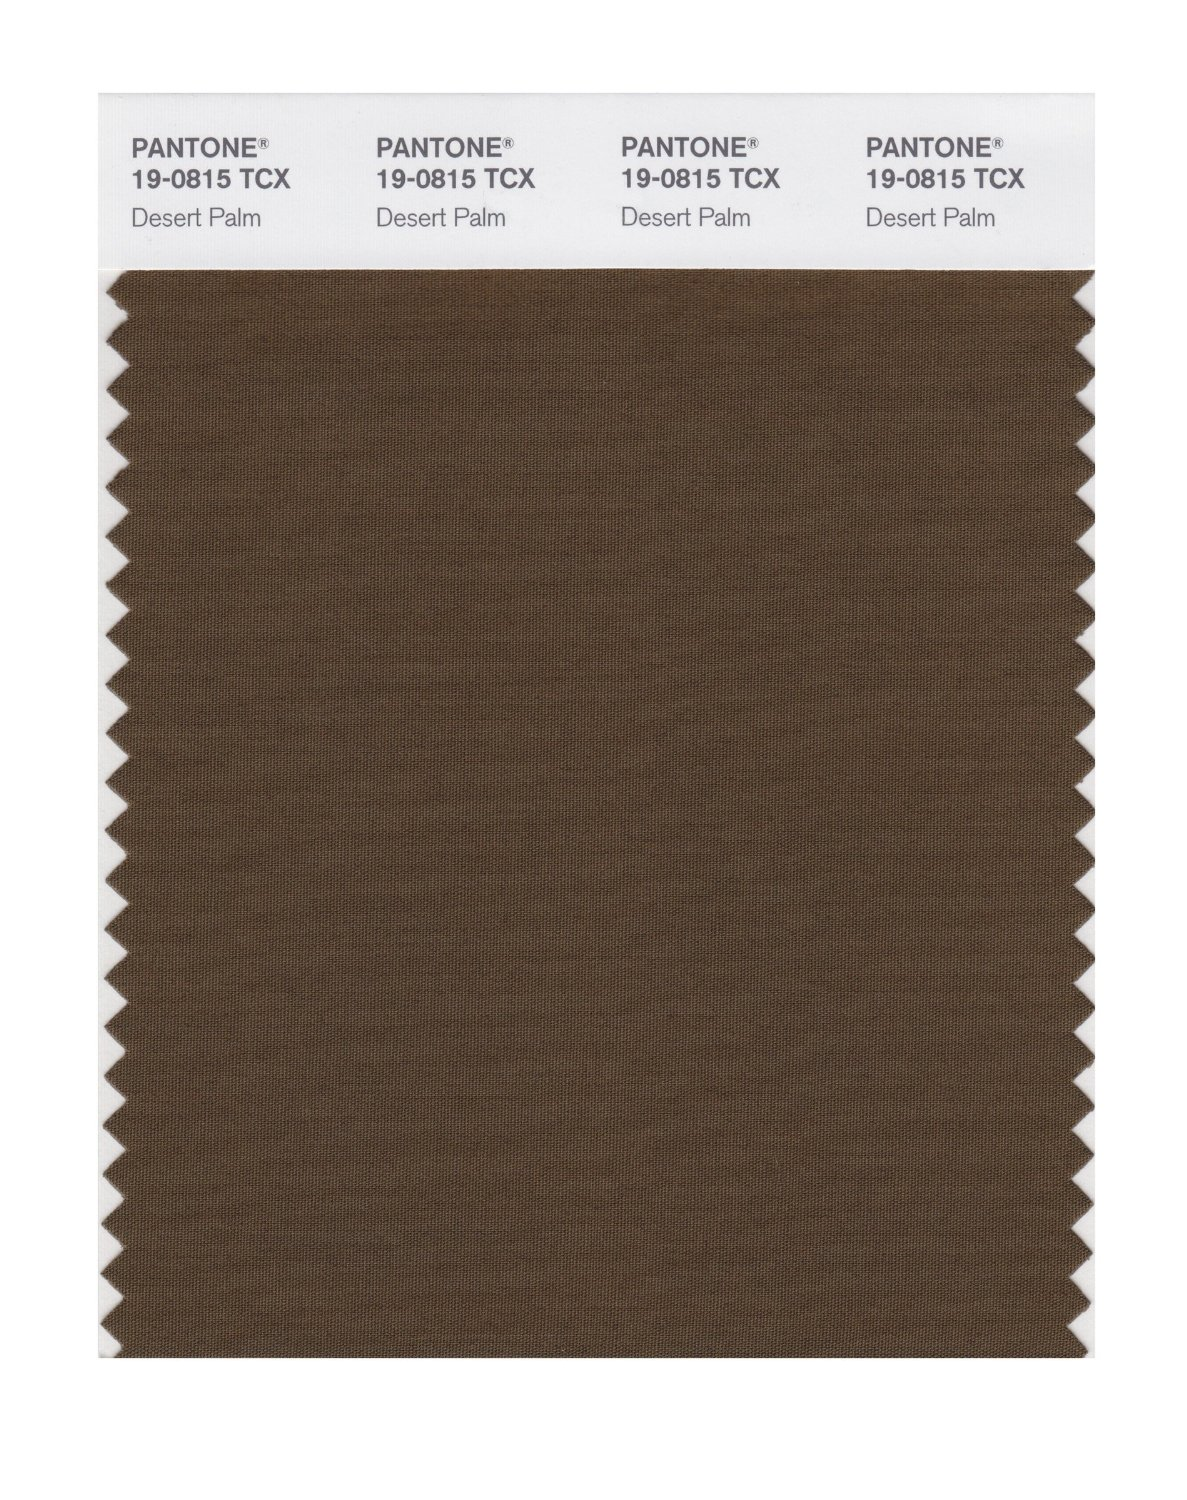 Pantone Smart Swatch 19-0815 Desert Palm